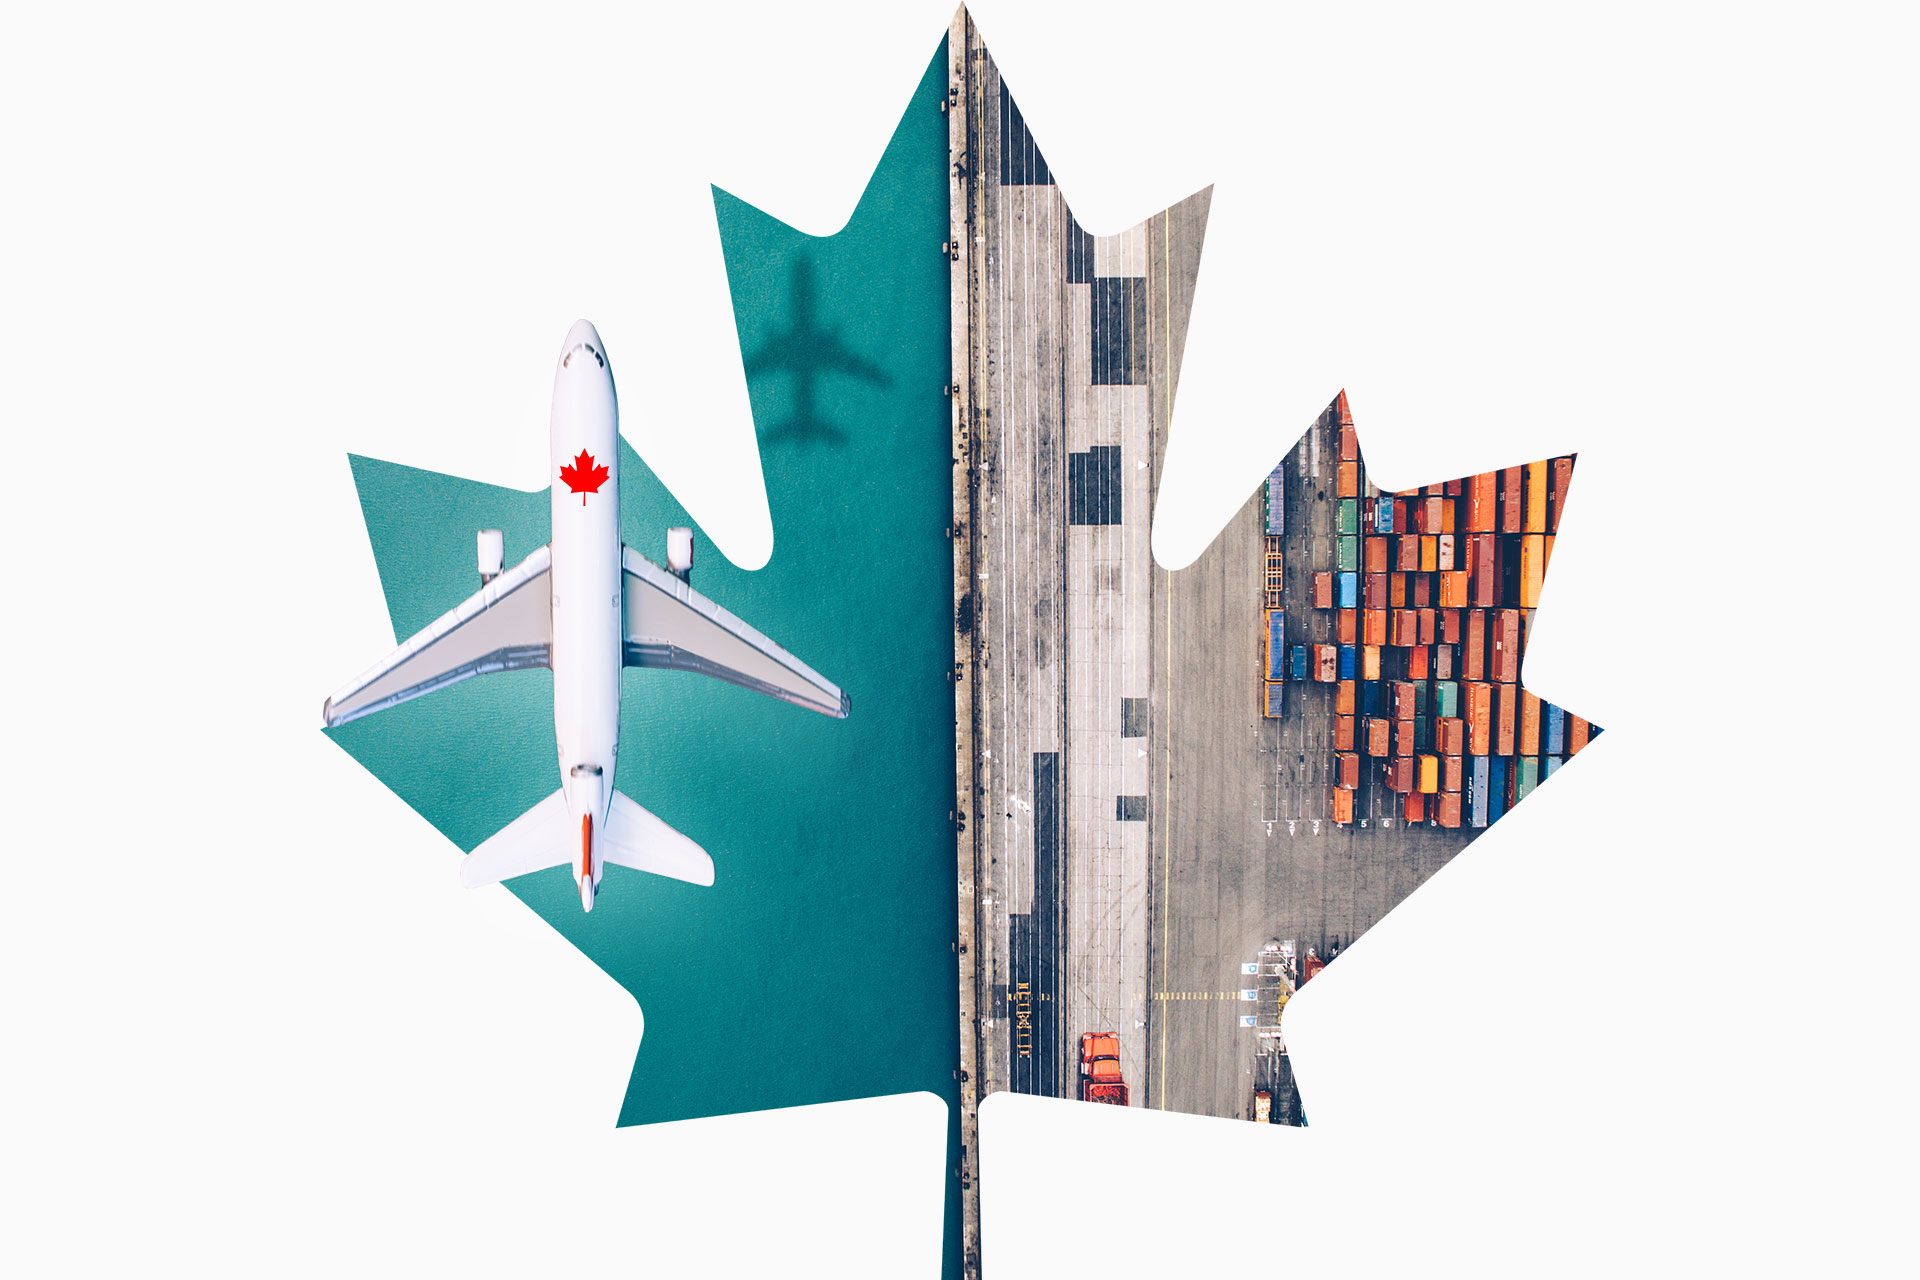 We care about Canada. - That's why we offer the richest air content of any online booking tool in Canada.LEARN MORE